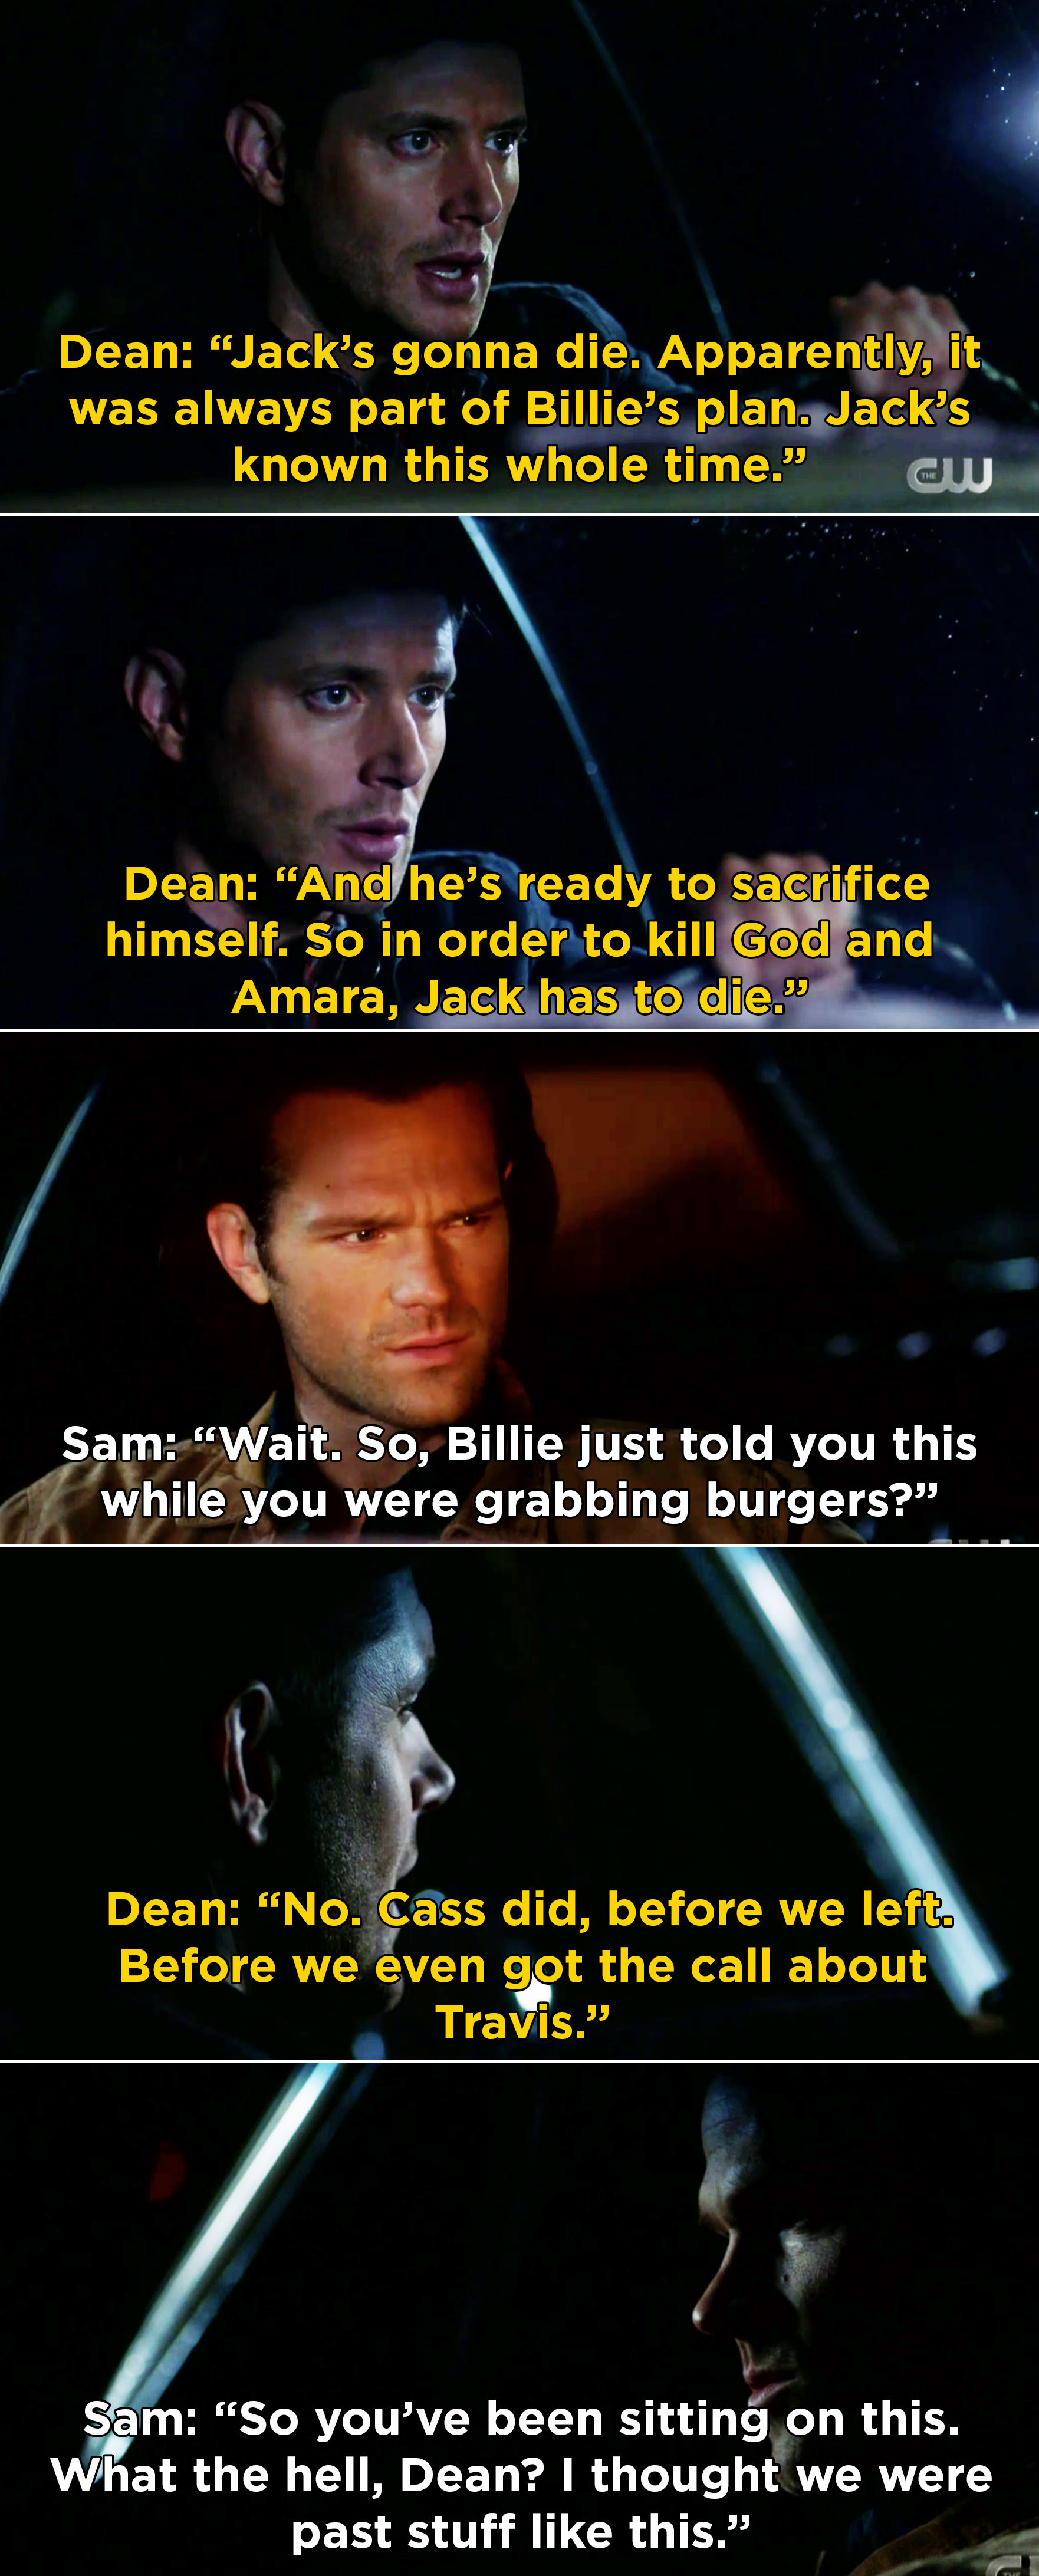 Dean tells Sam that he's known fro a while that Jack has to die, and Sam gets angry because he thought they were past Dean lying